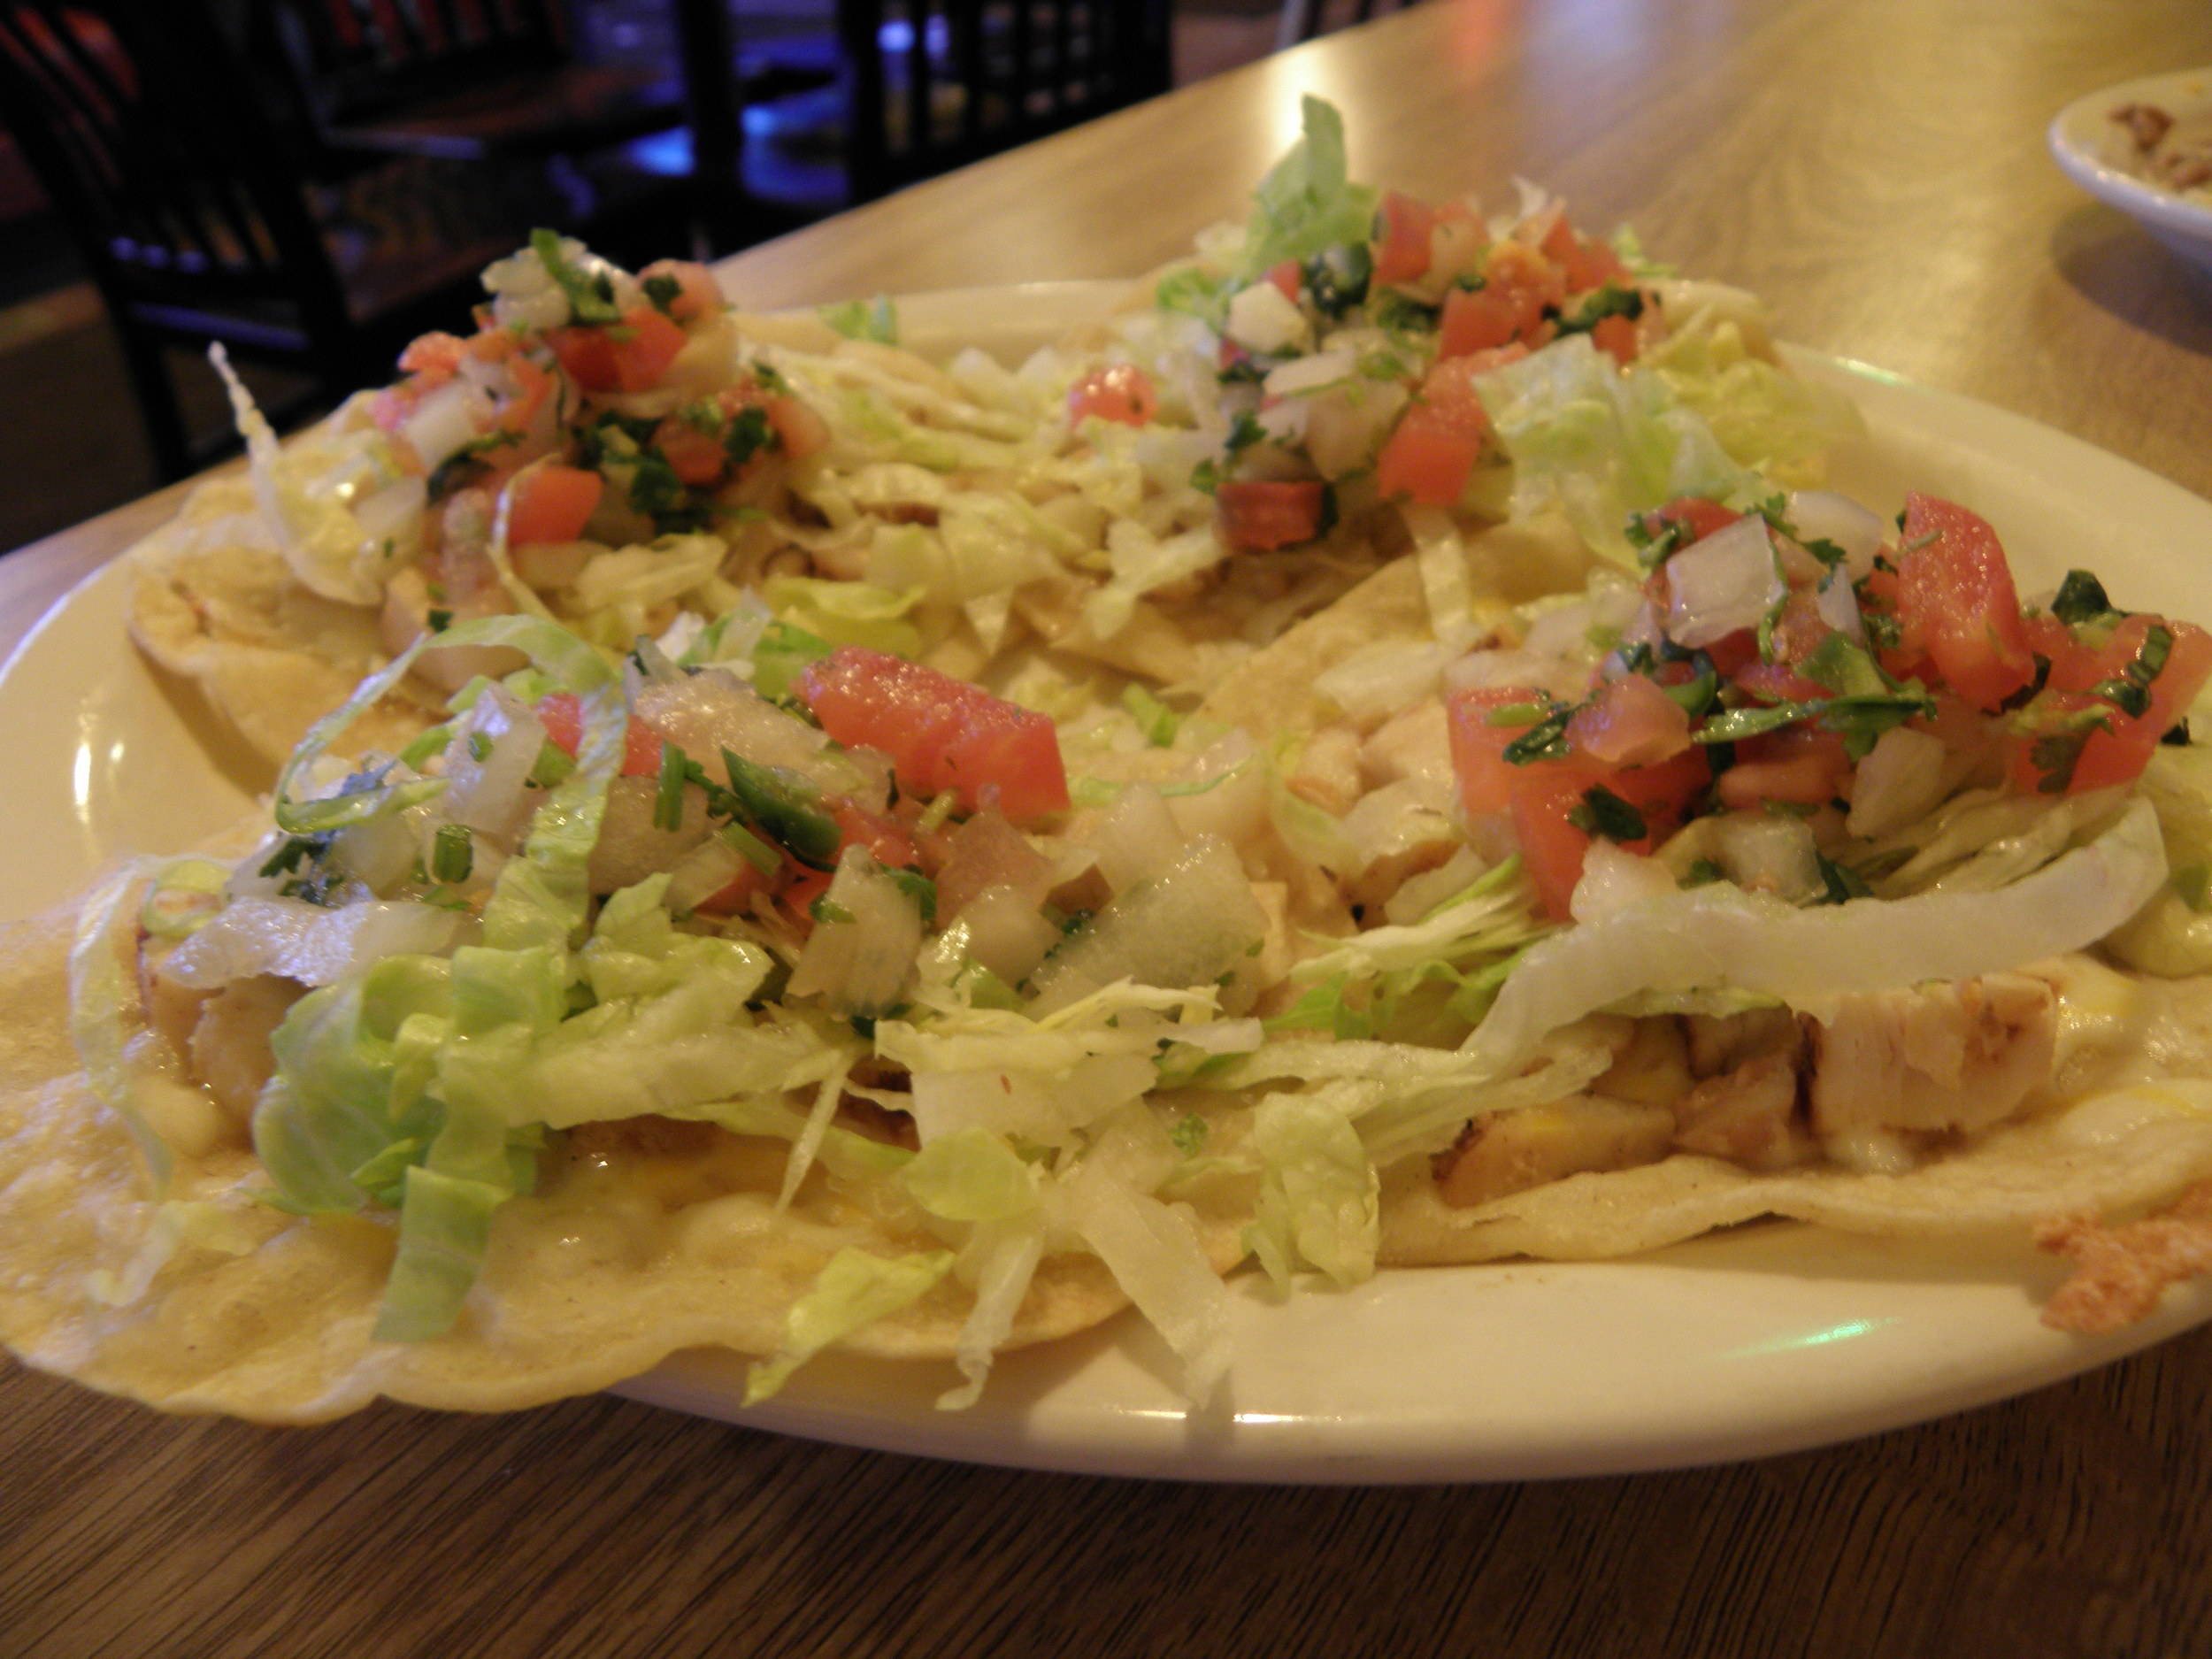 A plate full of our Tex Mex tacos